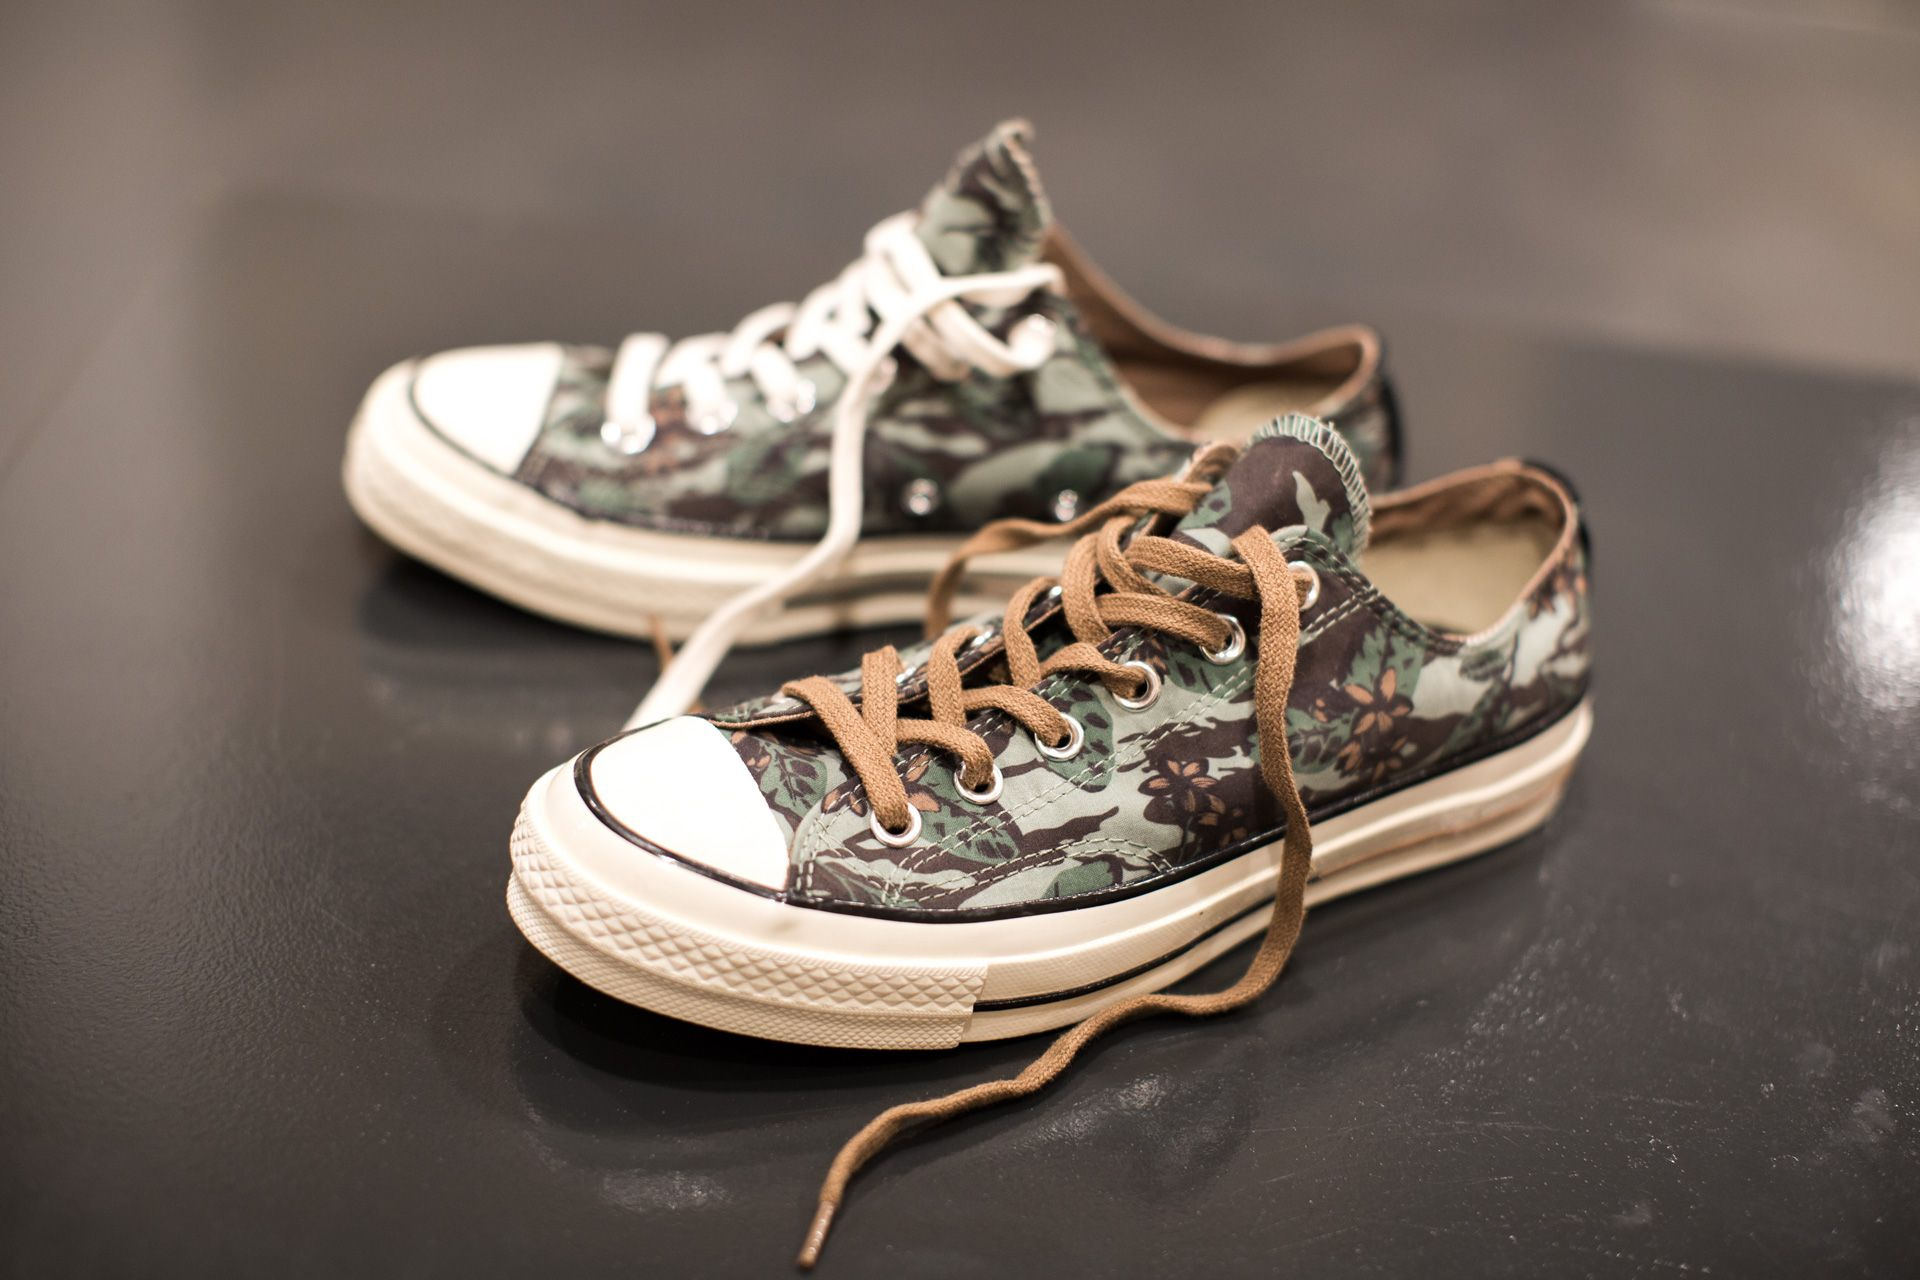 Converse All Star Sneaker Schuh 43 in 6330 Kufstein for